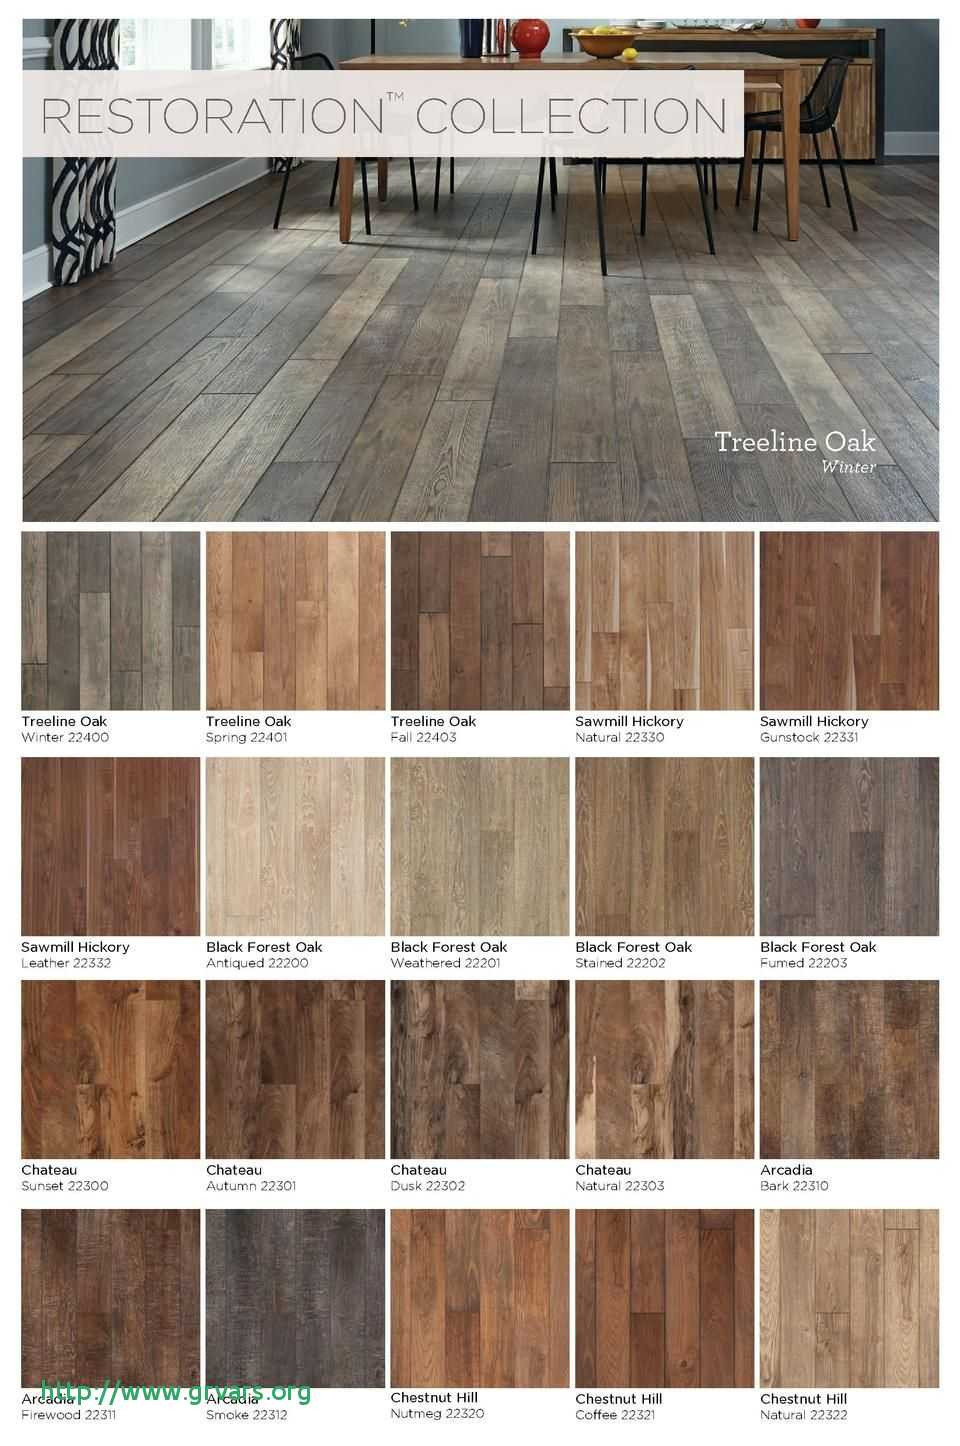 best deal hardwood floor molding of 25 charmant does hardwood floors increase home value ideas blog intended for does hardwood floors increase home value inspirant mannington offers quality laminate flooring in both hardwood and